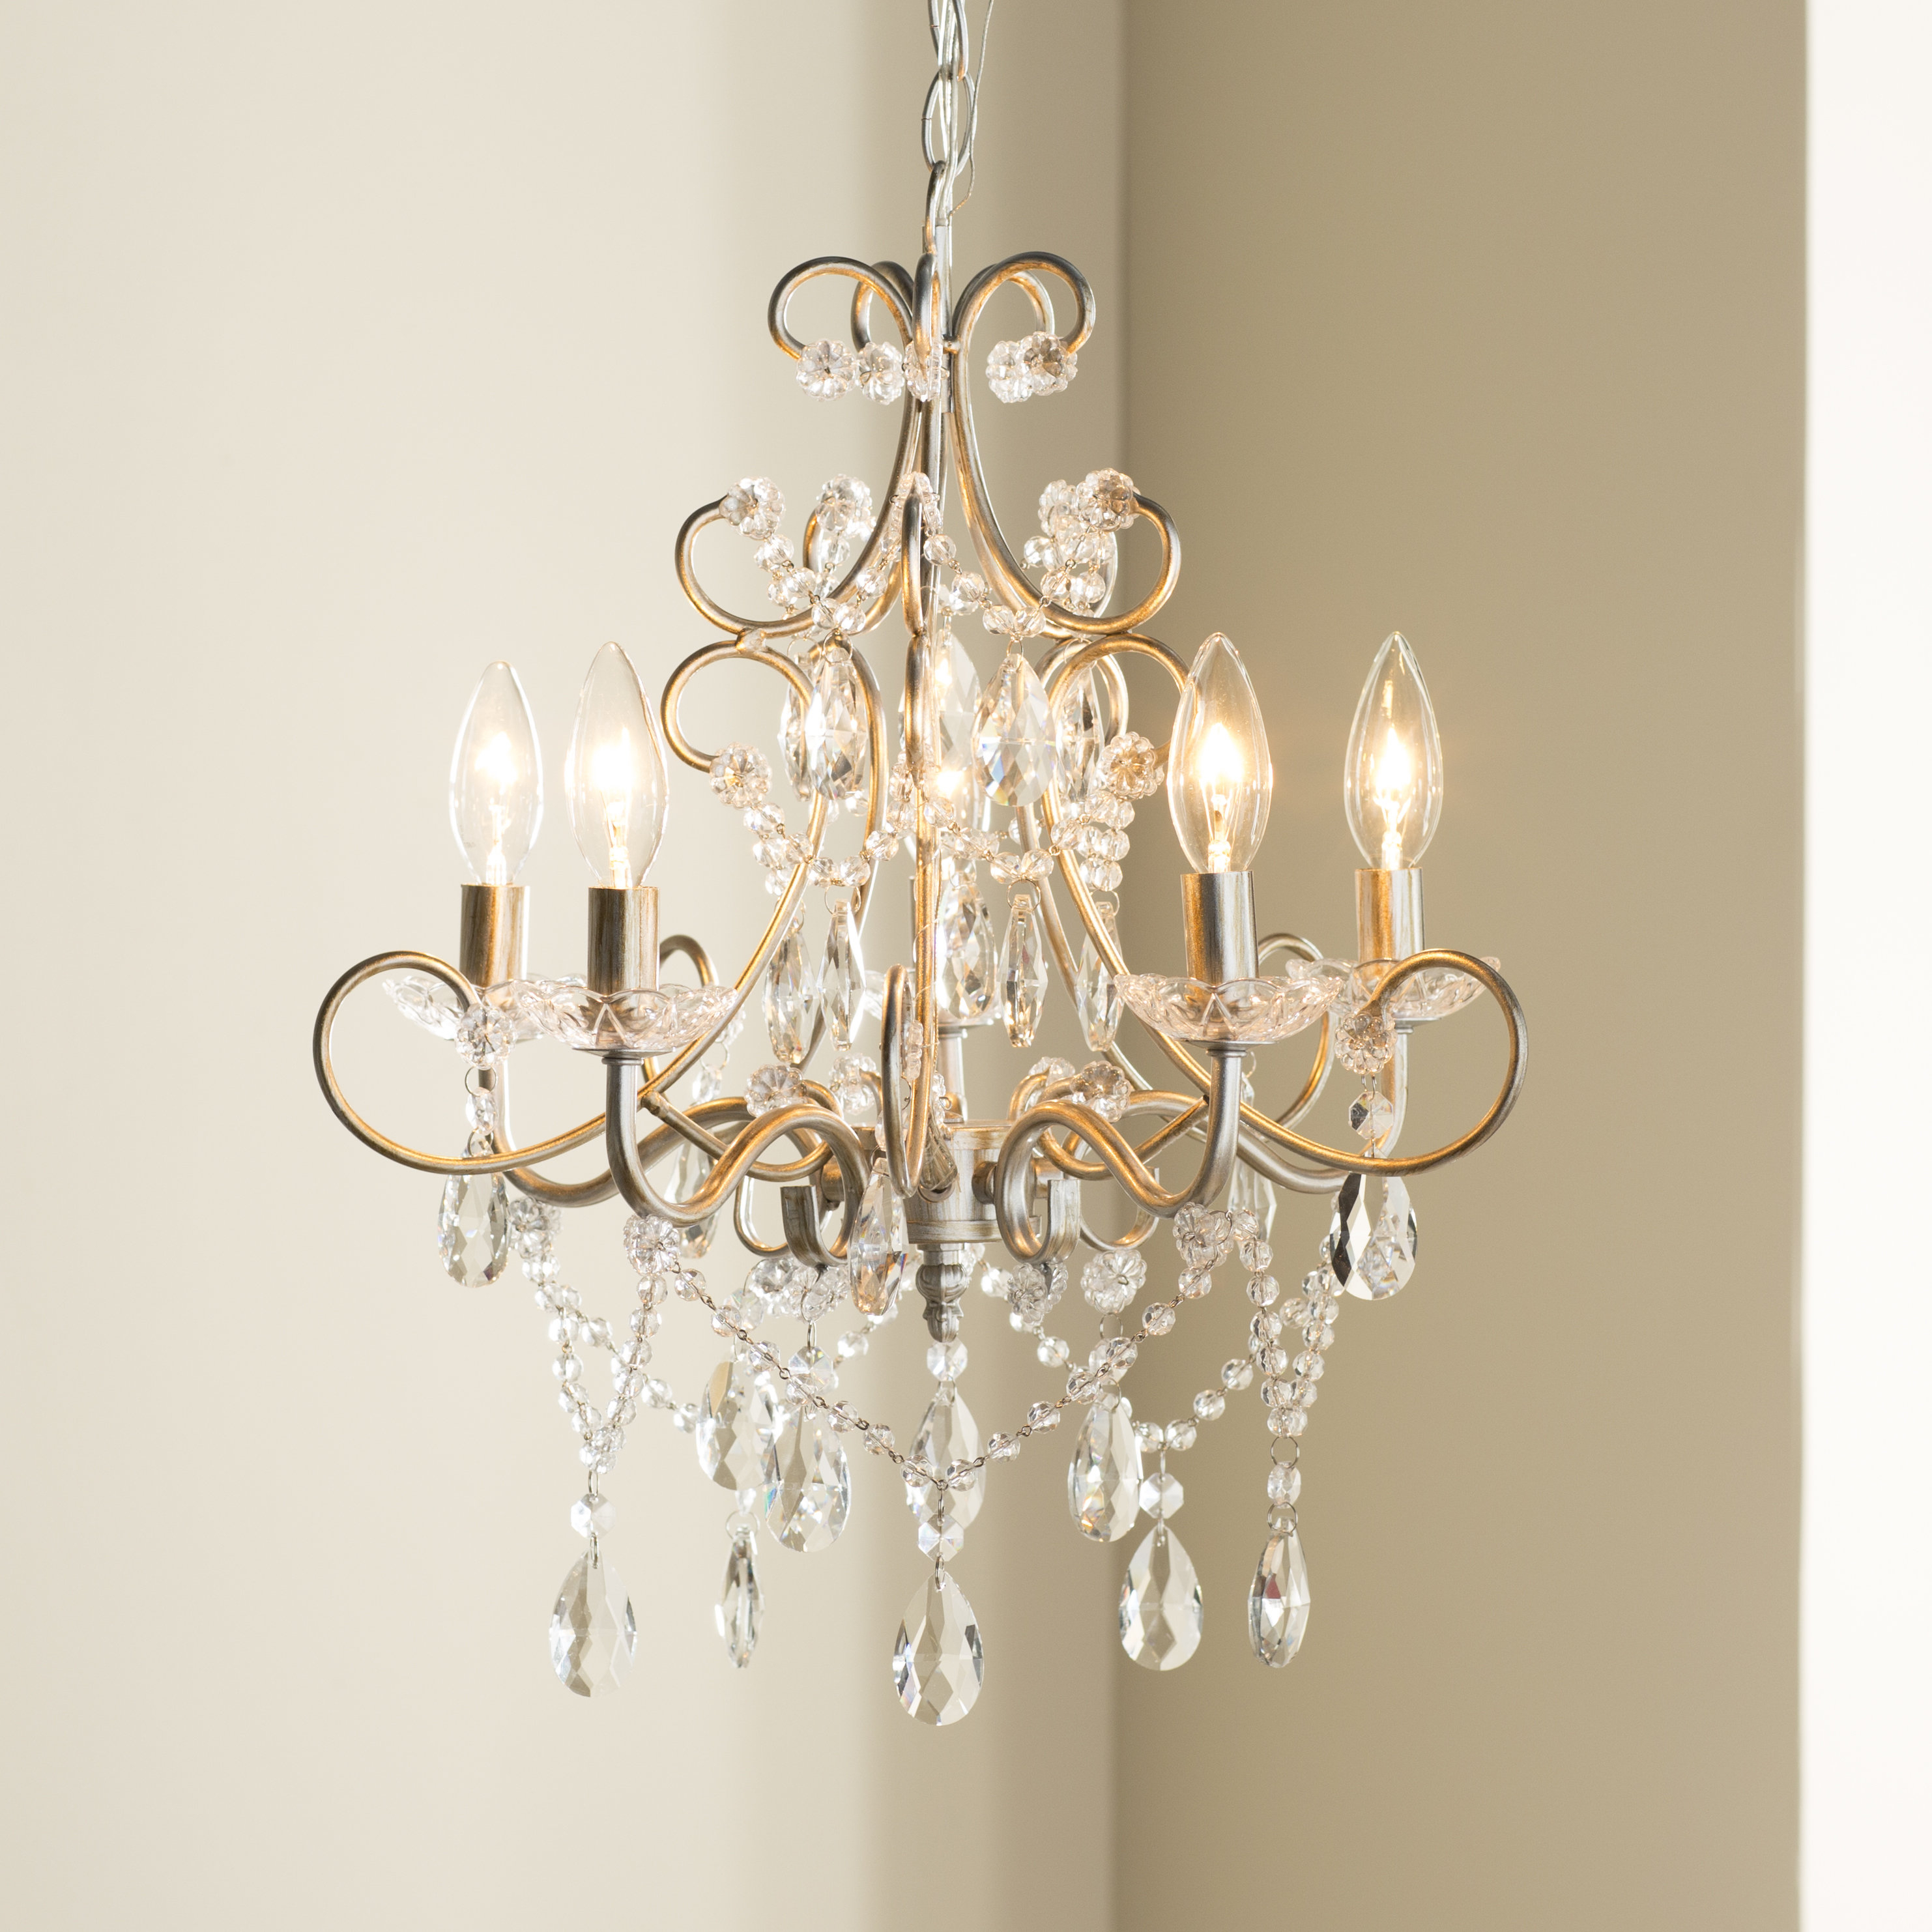 Astoria Grand Blanchette 5 Light Candle Style Chandelier Intended For Hesse 5 Light Candle Style Chandeliers (View 15 of 30)